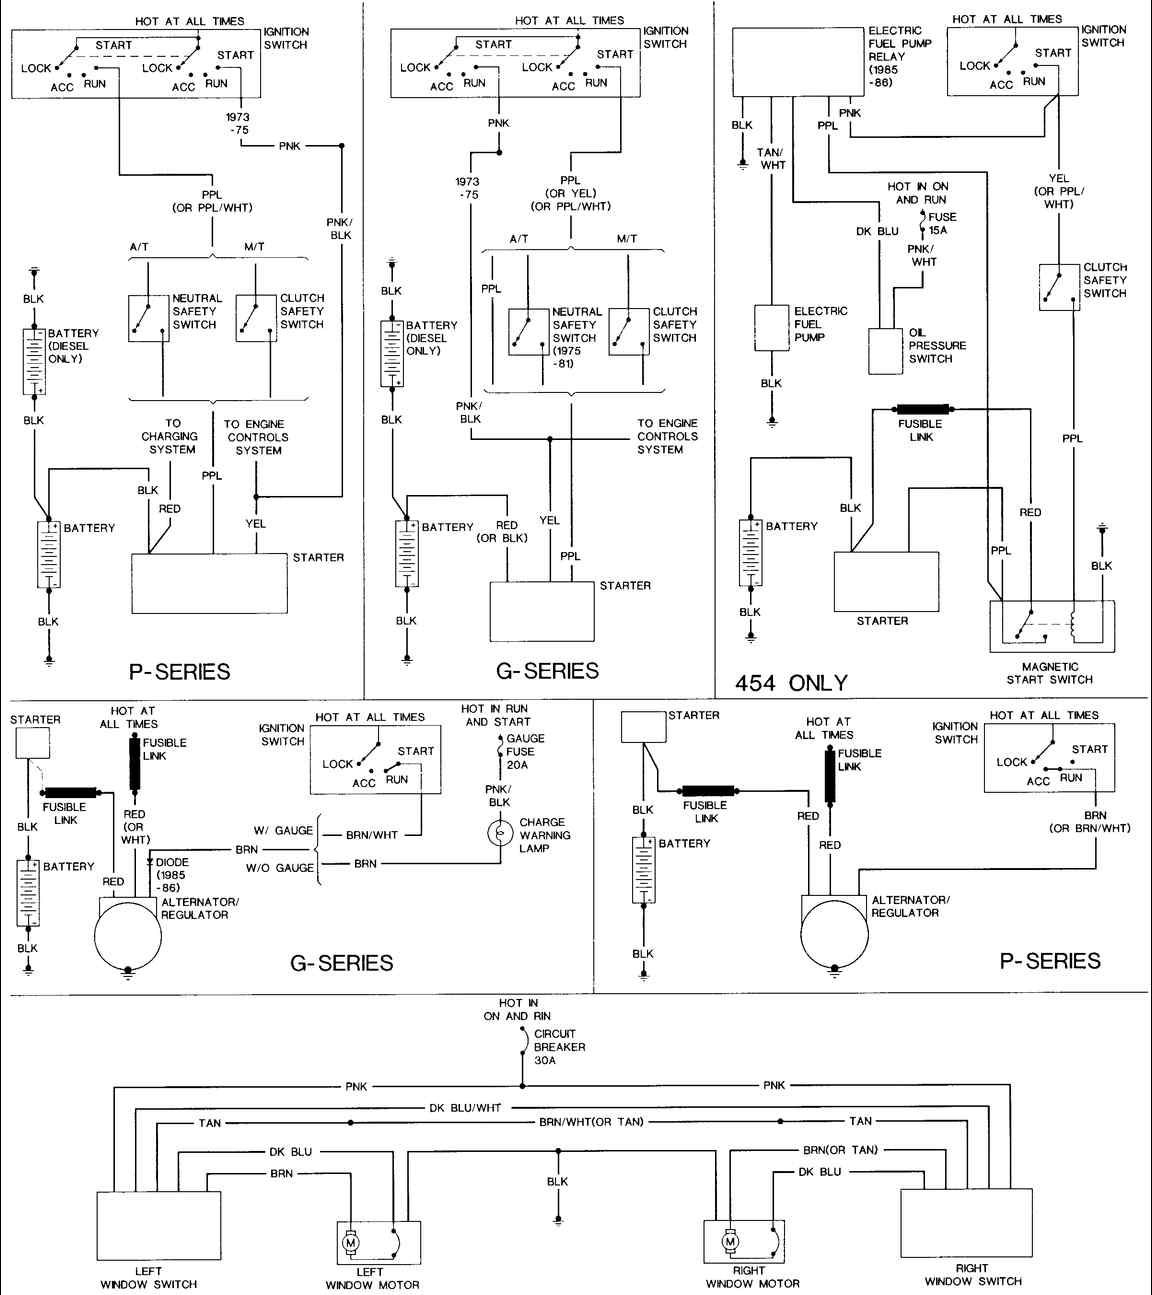 85 chevy truck wiring diagram 85 chevy van the steering 85 Chevy Suburban Wiring Diagram